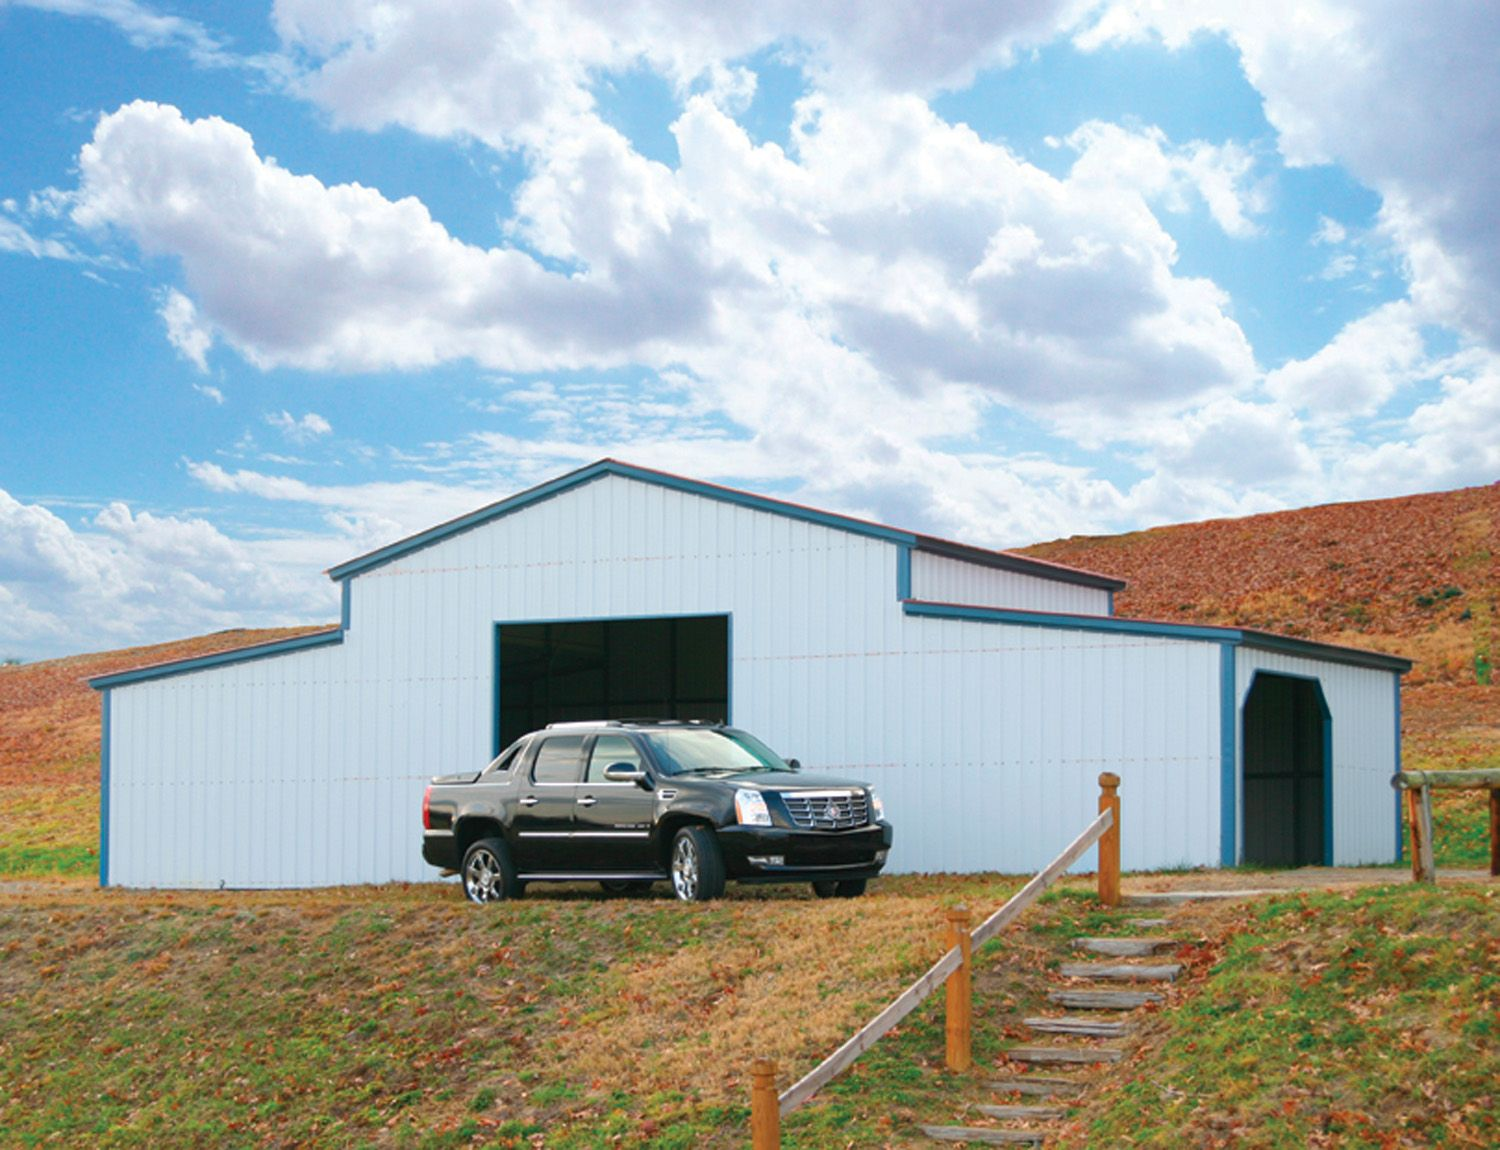 Barn Vertical Style 12x24x12 Height 14,9 (With images